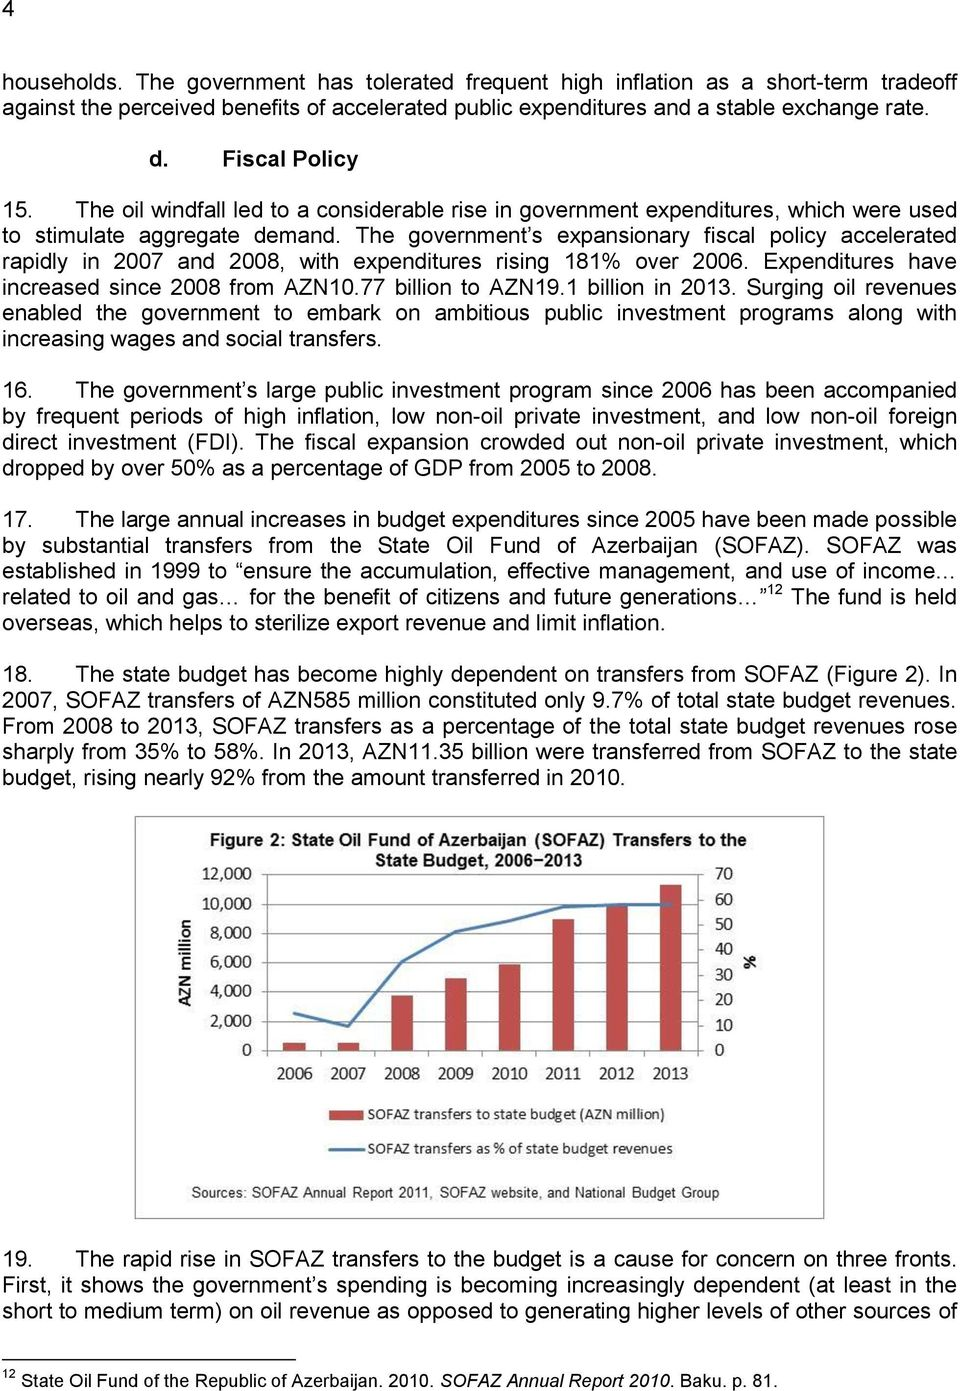 The government s expansionary fiscal policy accelerated rapidly in 2007 and 2008, with expenditures rising 181% over 2006. Expenditures have increased since 2008 from AZN10.77 billion to AZN19.